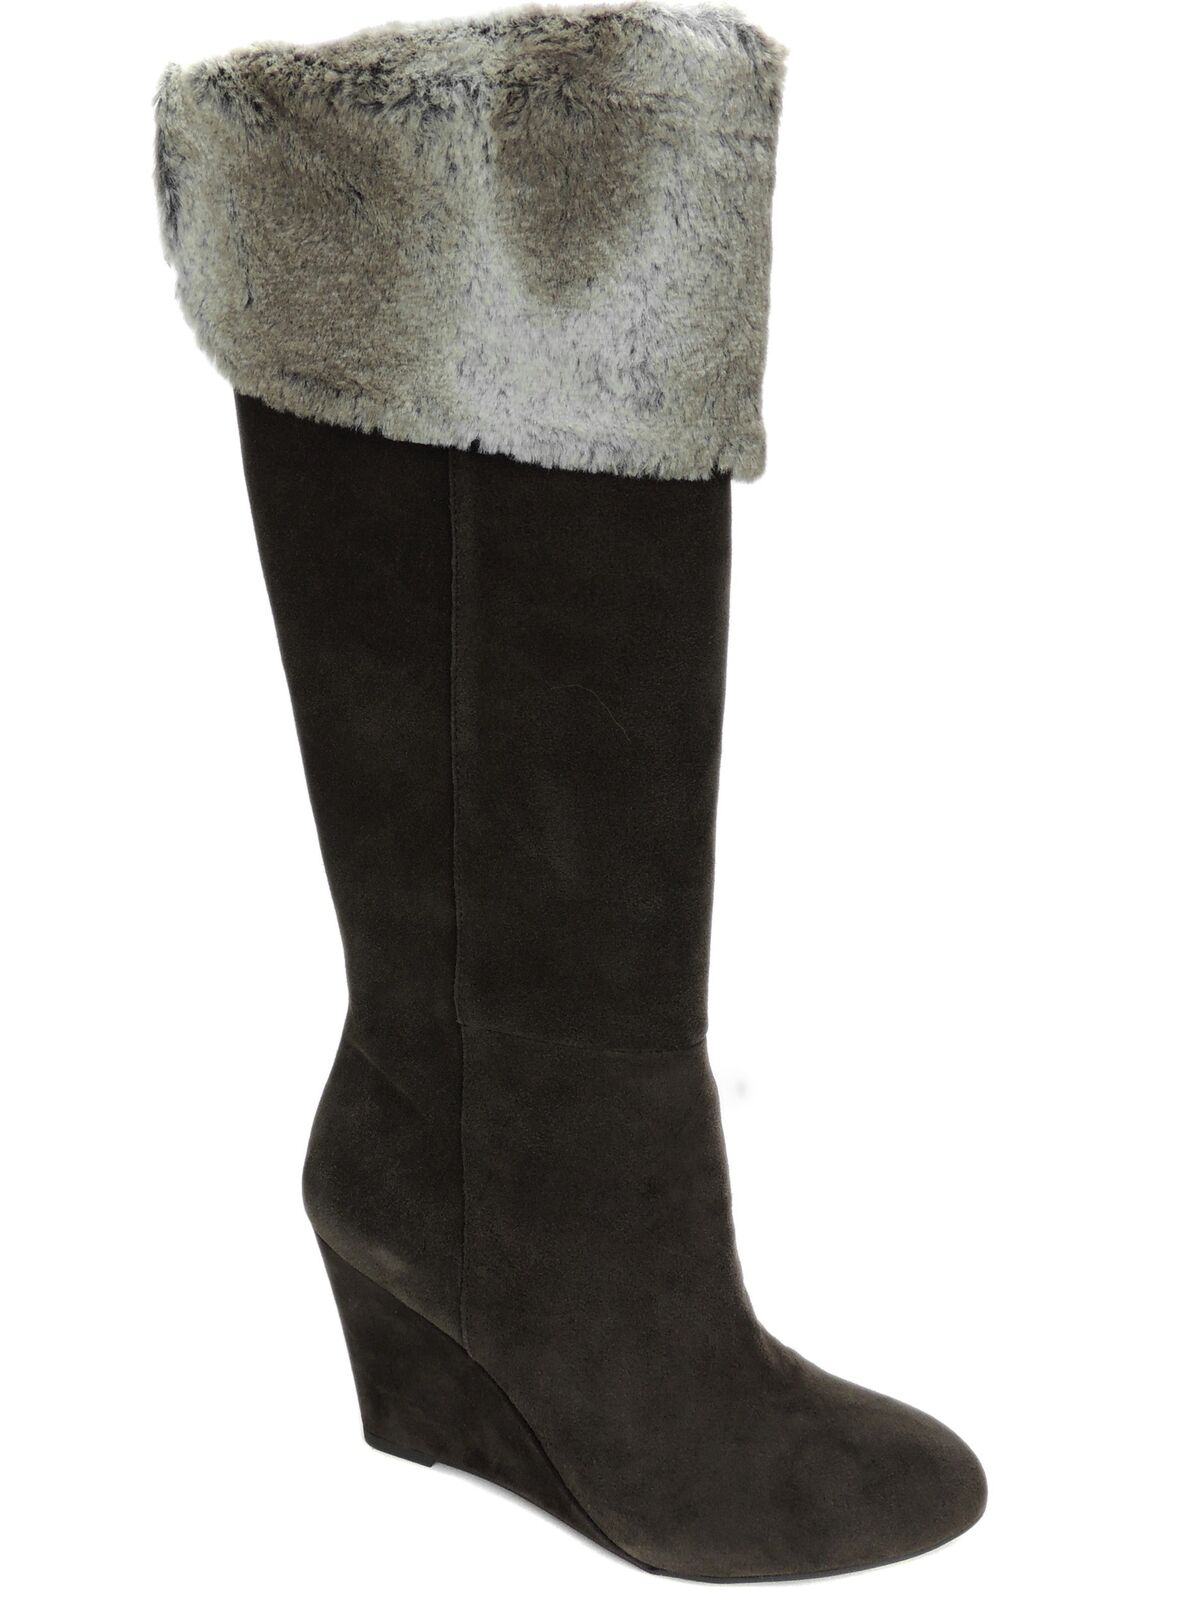 BCBGeneration Women's Mocha Calf Boots Boots Boots Onyx Brown Oily Suede Size 9.5 M b043bd